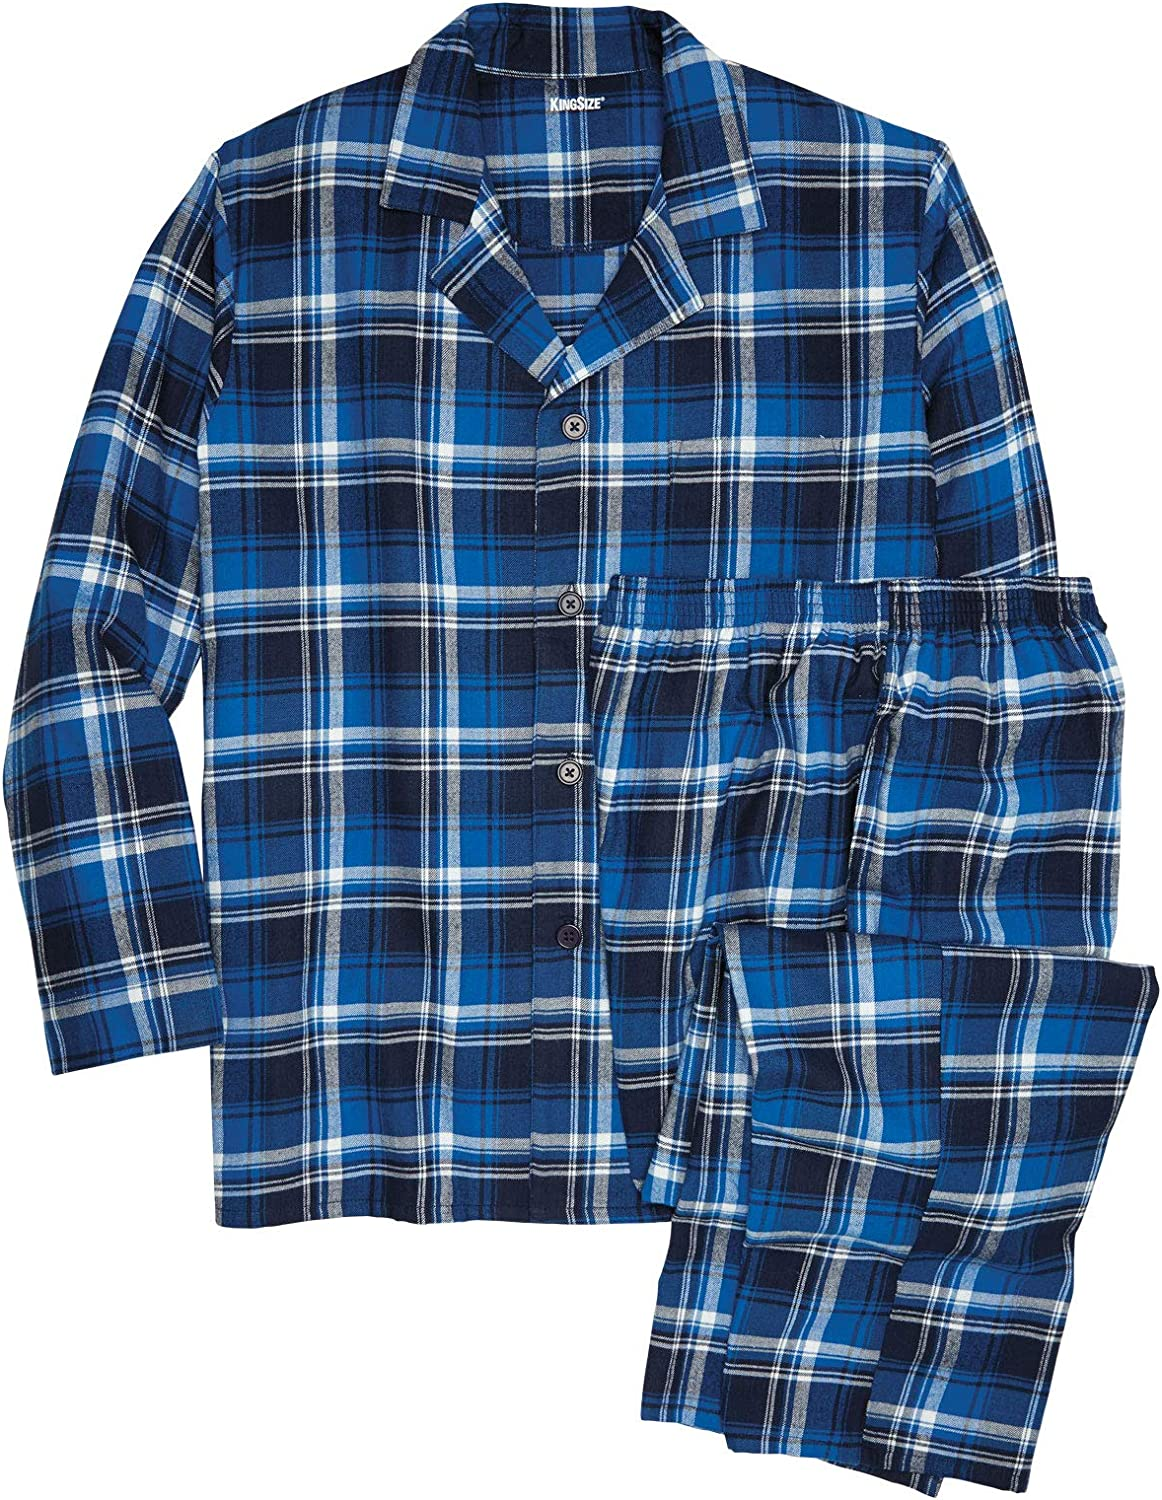 KingSize Mens Big /& Tall Plaid Flannel Pajama Set Pajamas